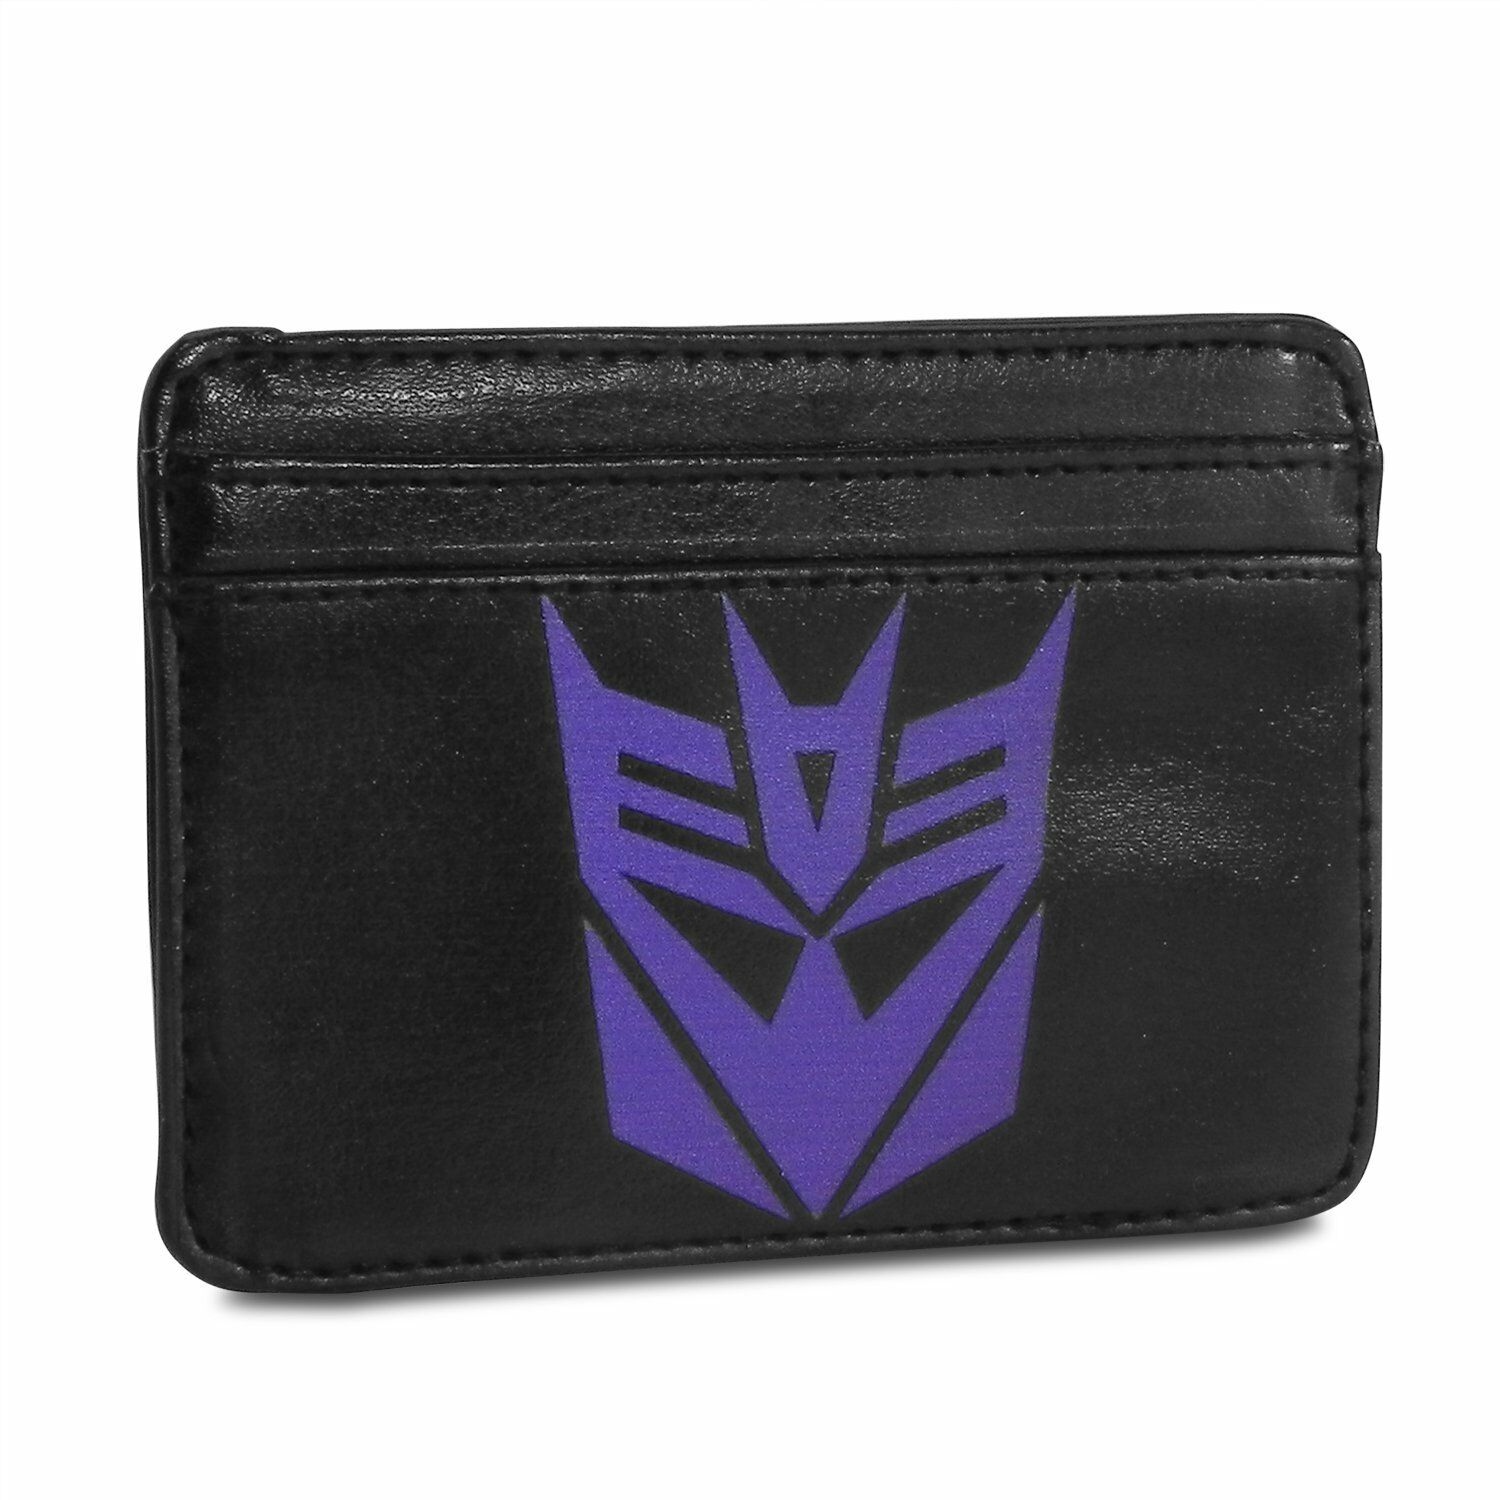 Transformers Decepticons Logo Synthetic Leather Credit Cards Weekend Wallet